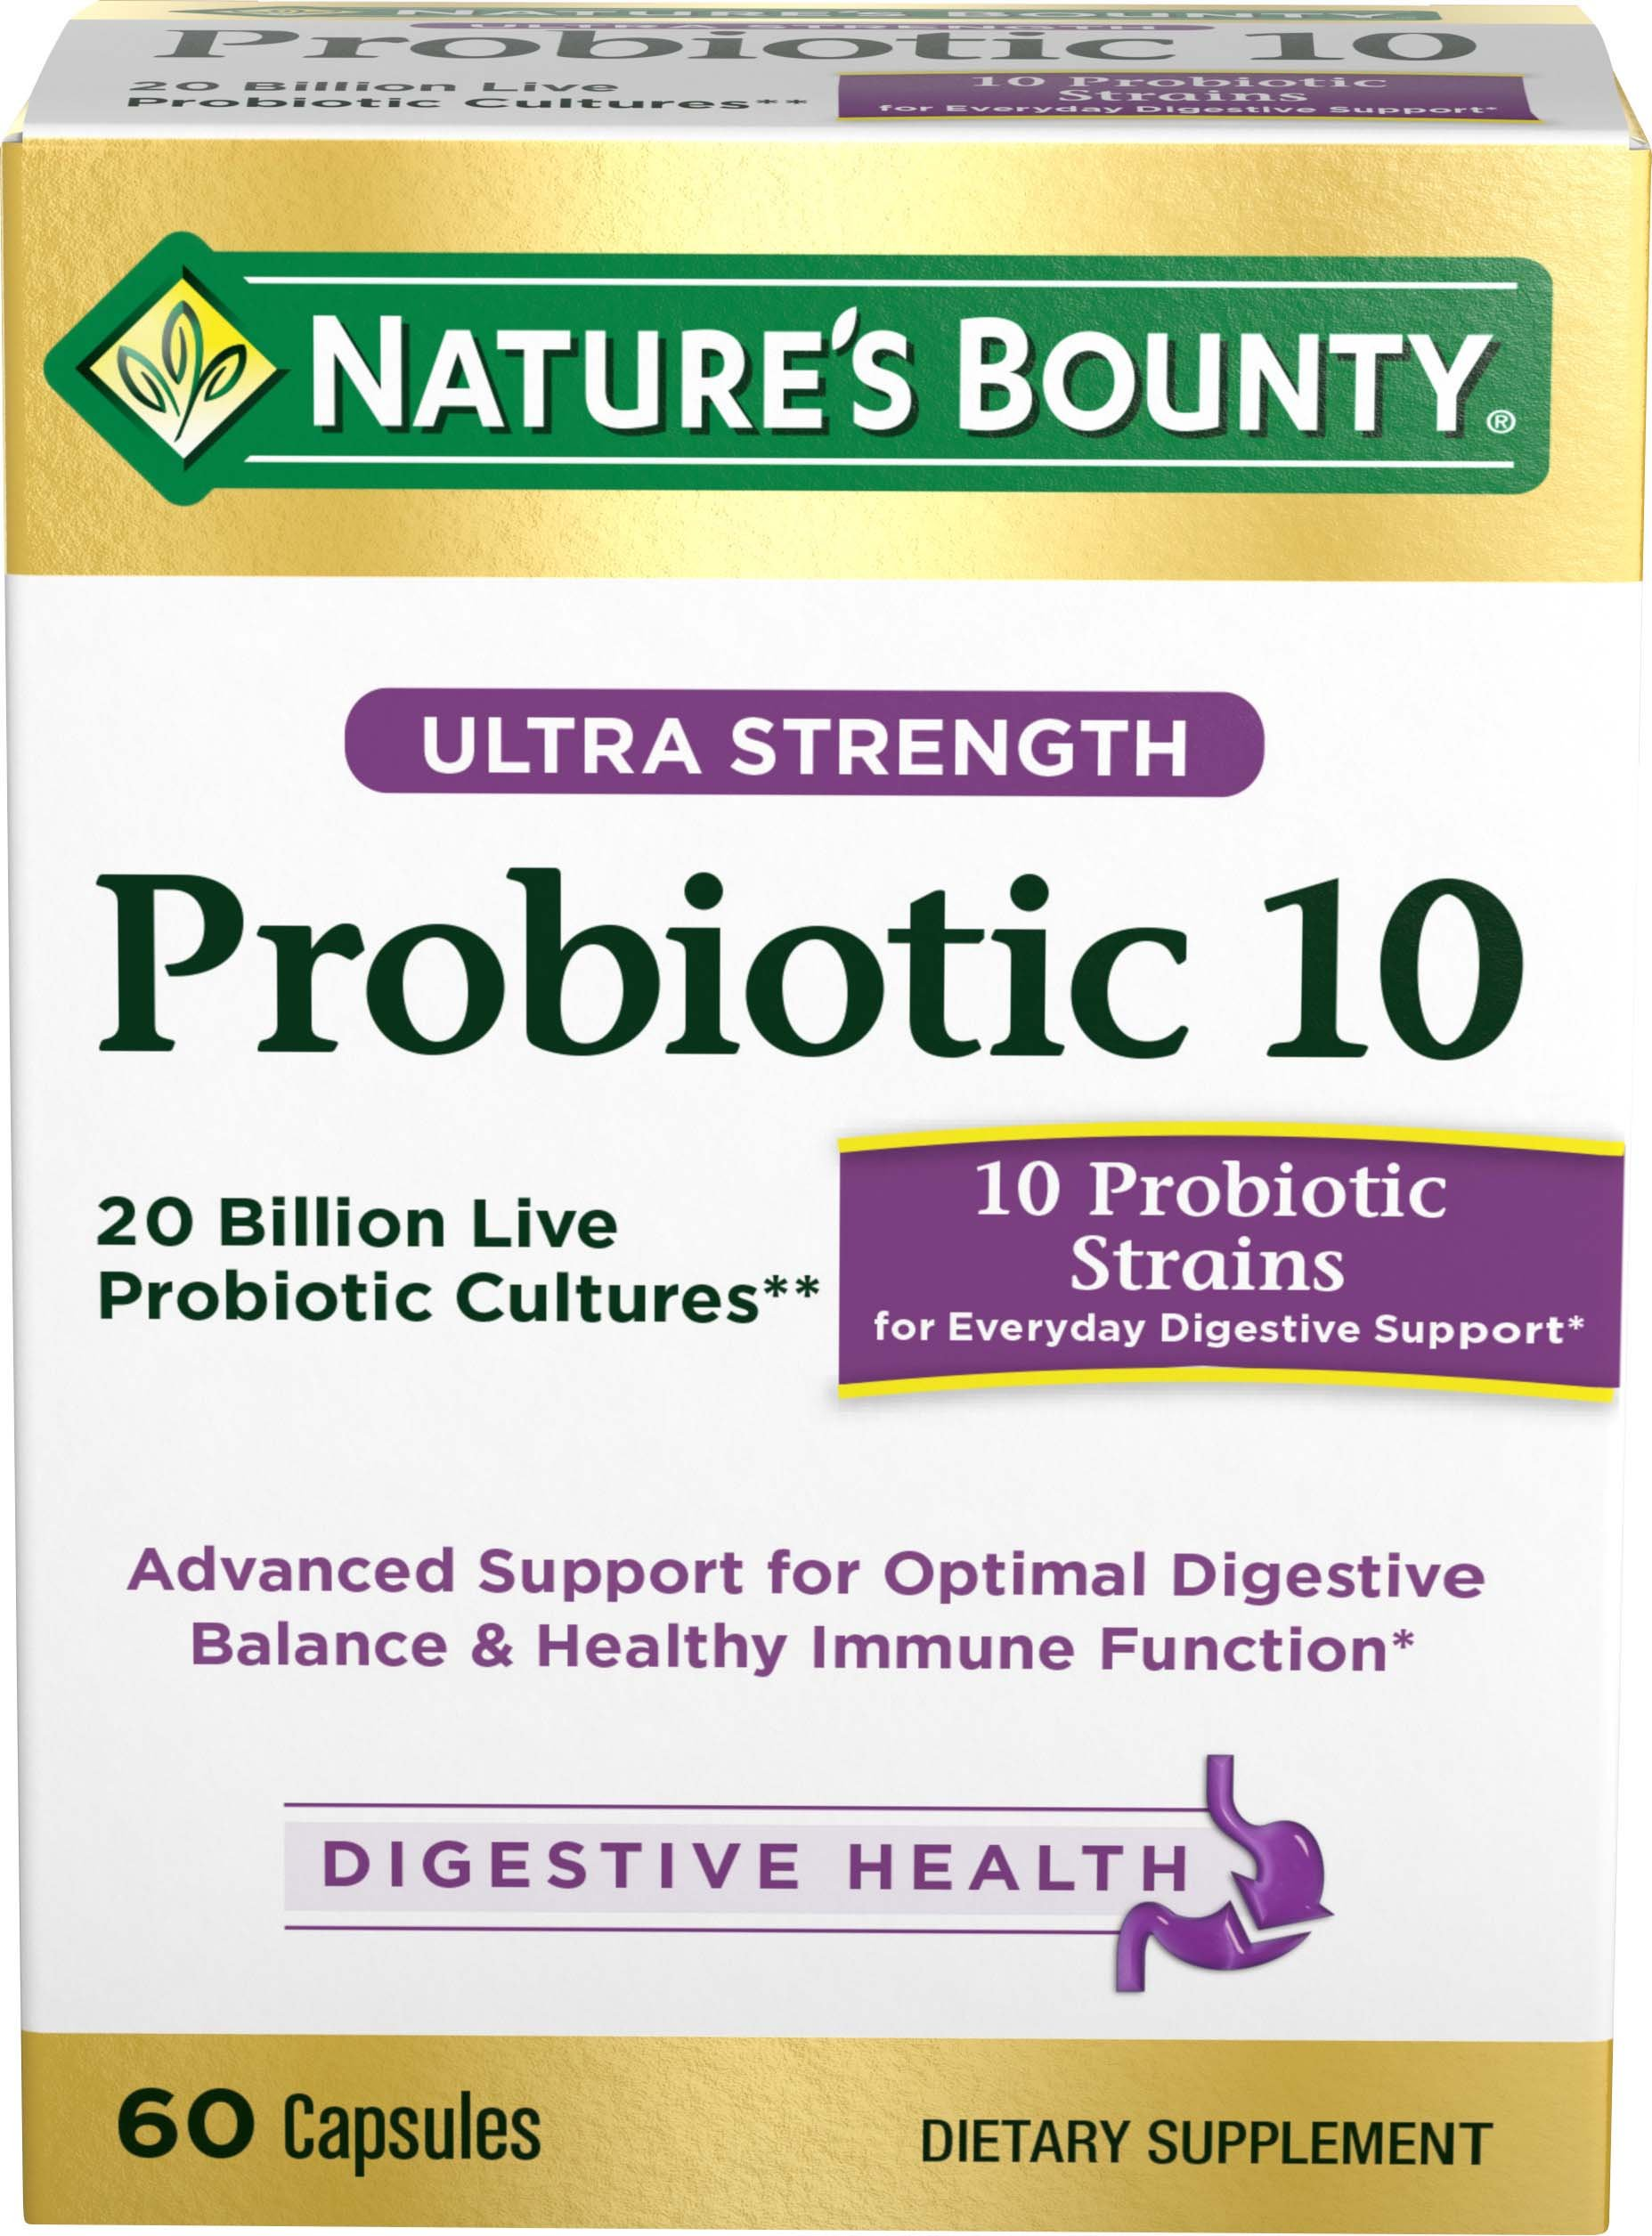 Nature's Bounty Probiotics Pills Ultra Strength Dietary Supplement, Supports Digestive and Intestinal Health, 60 Count (Pack of 1) by Nature's Bounty